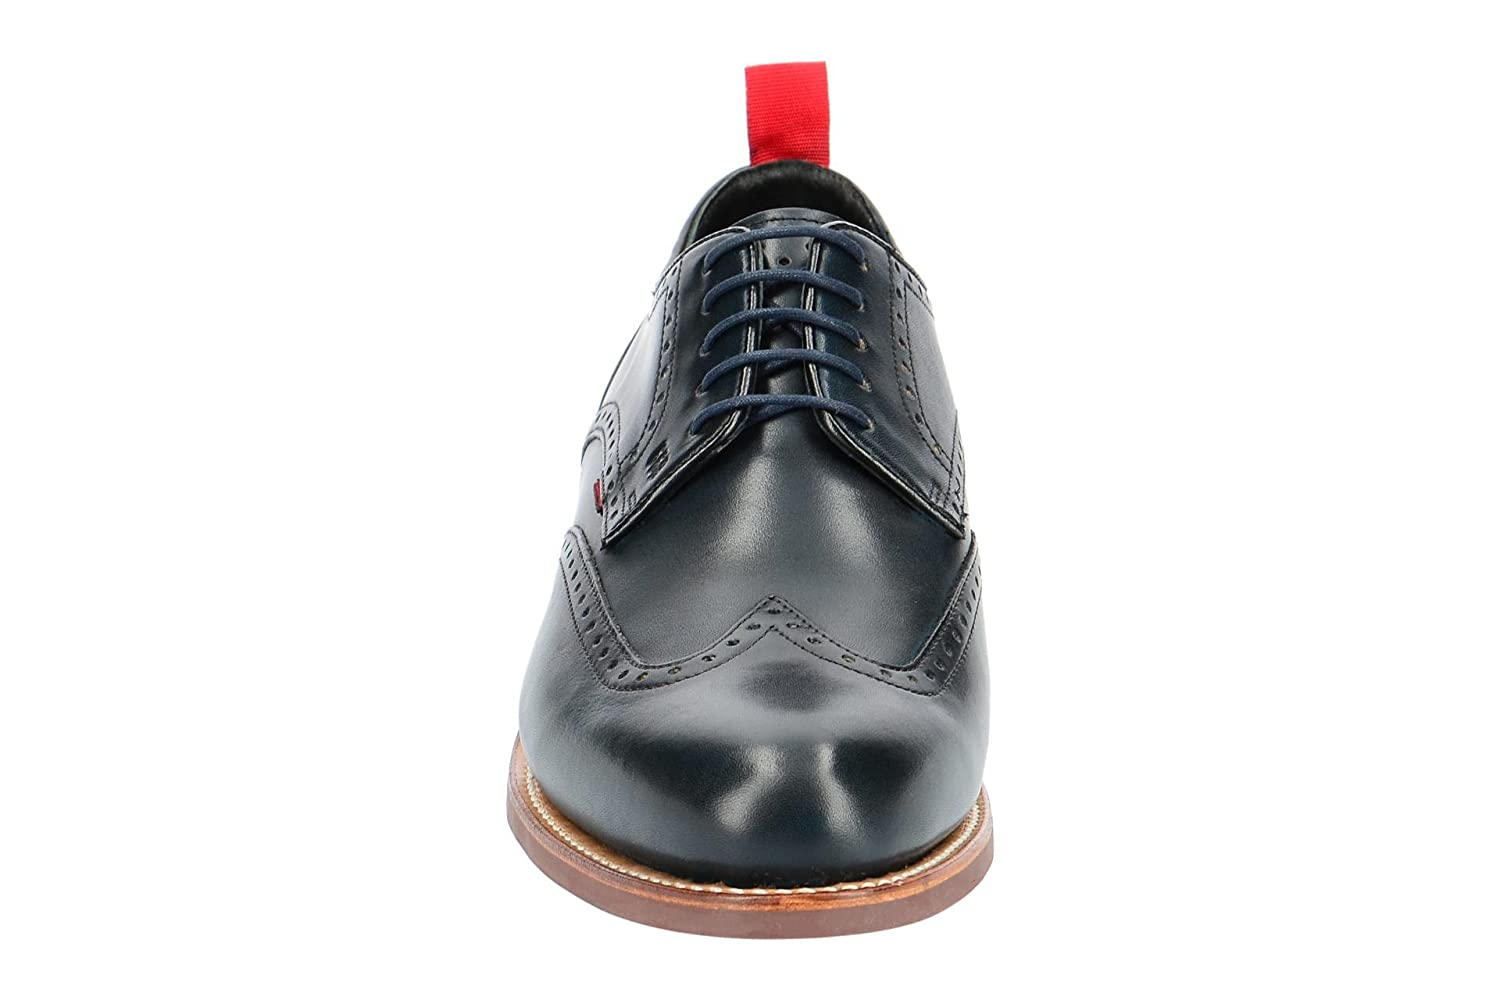 Gordon & Bros Bros Bros Levet 5660 Flex N Klassischer rahmengenähter Herren Derby Schnürhalbschuh, Full Brogue, Flexible Goodyear Welted Halb Leder Halb Noppen Sohle Business und Freizeit B075SCQRXH 0874d2